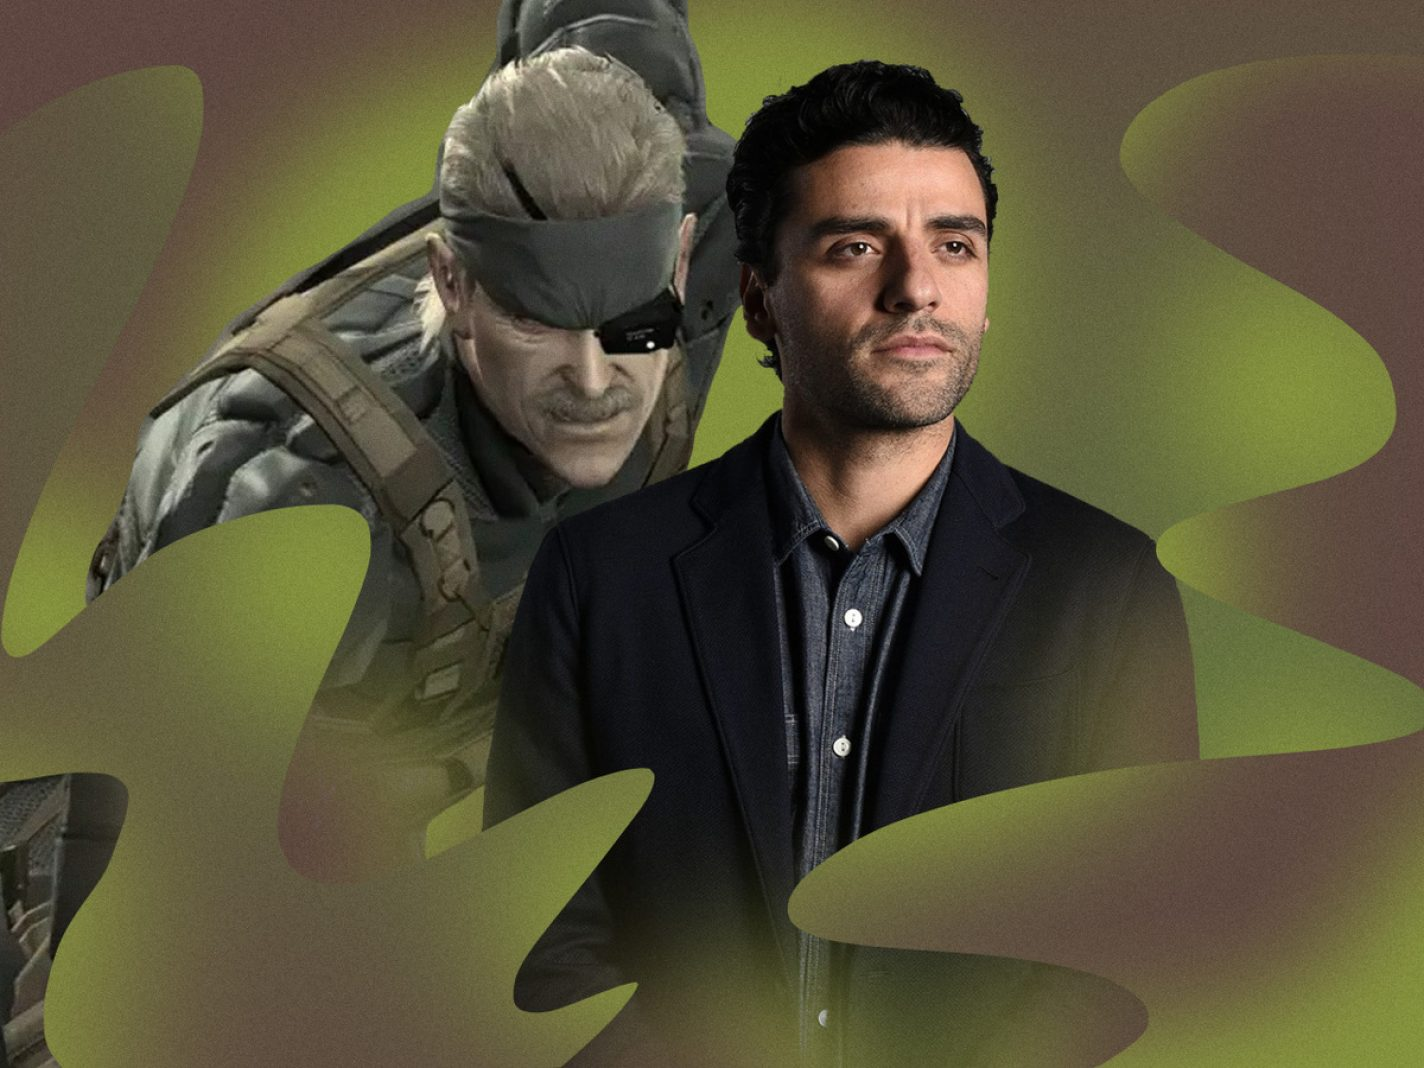 Oscar Isaac Will Be Solid Snake in Upcoming Metal Gear Movie